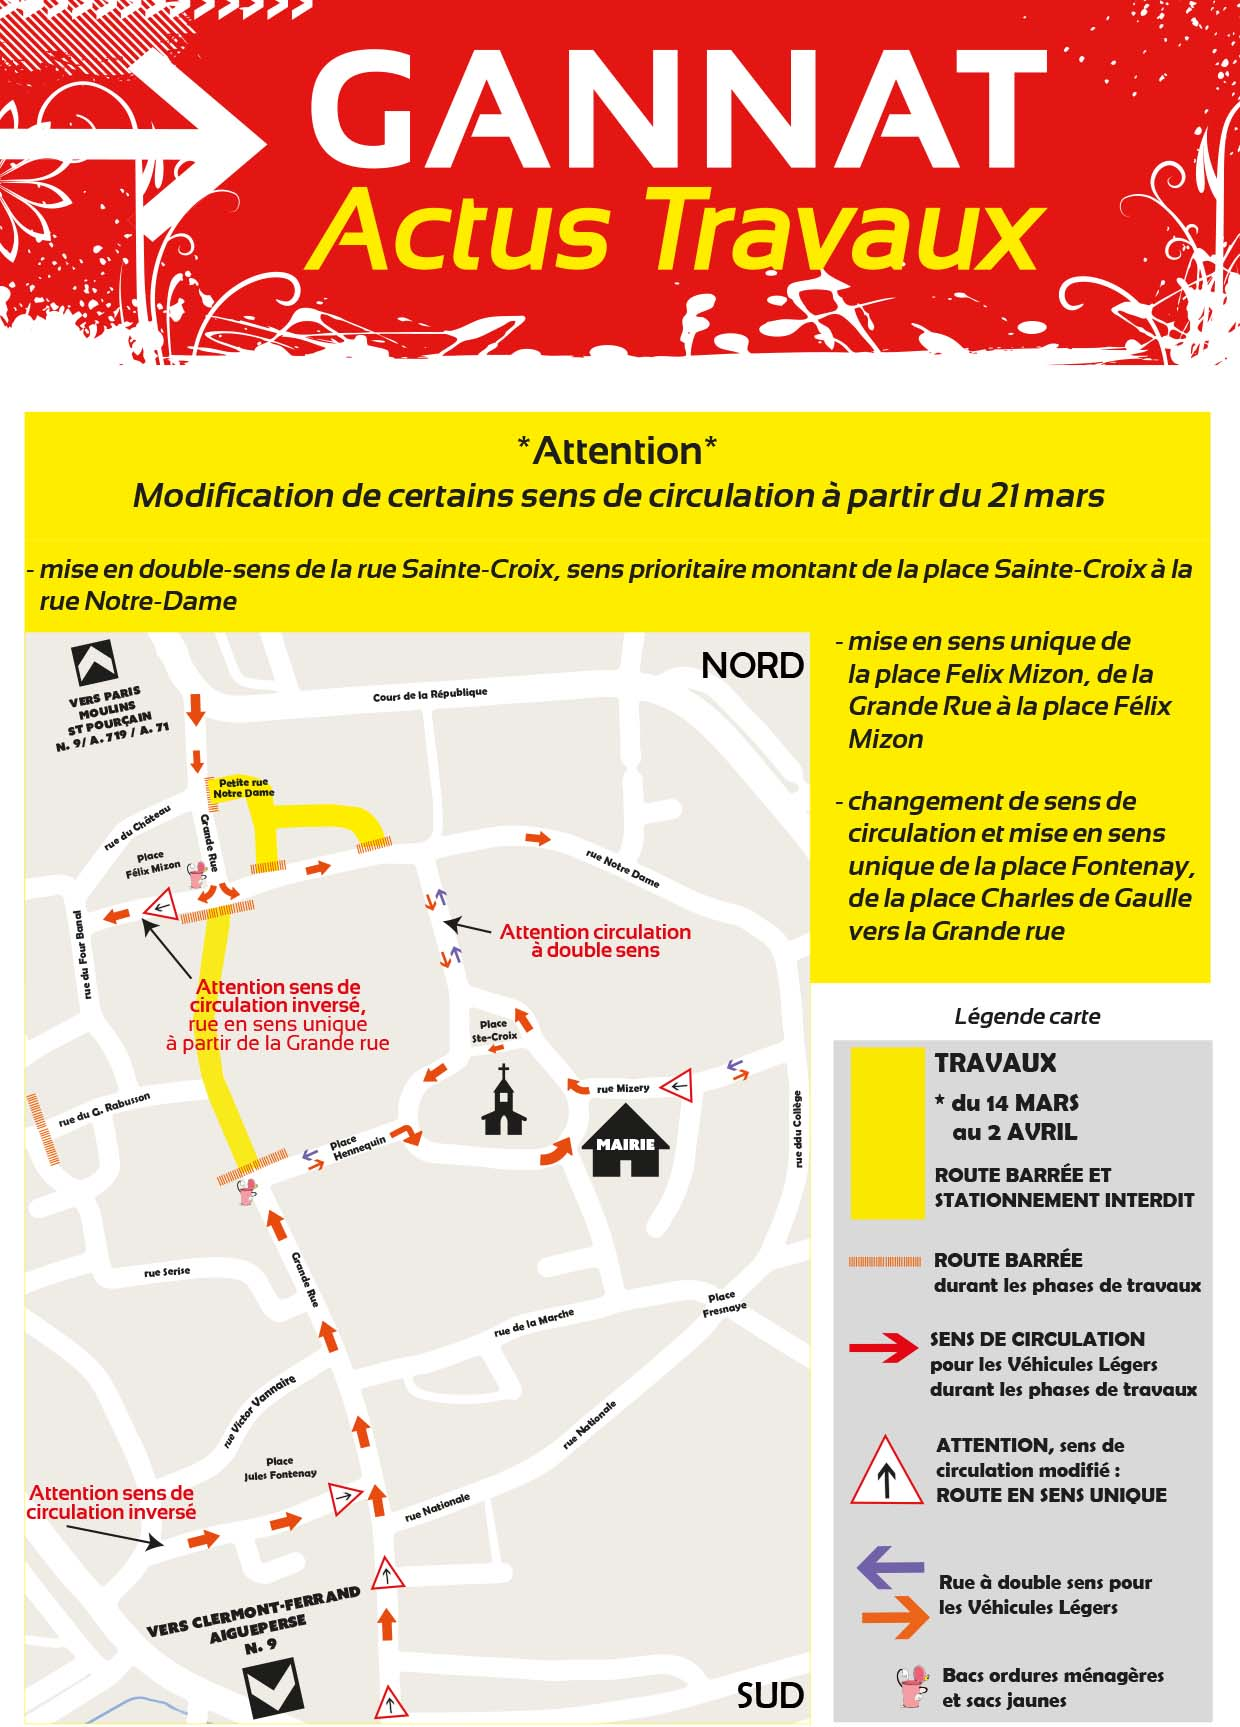 Plan travaux 21 mars au 2 avril